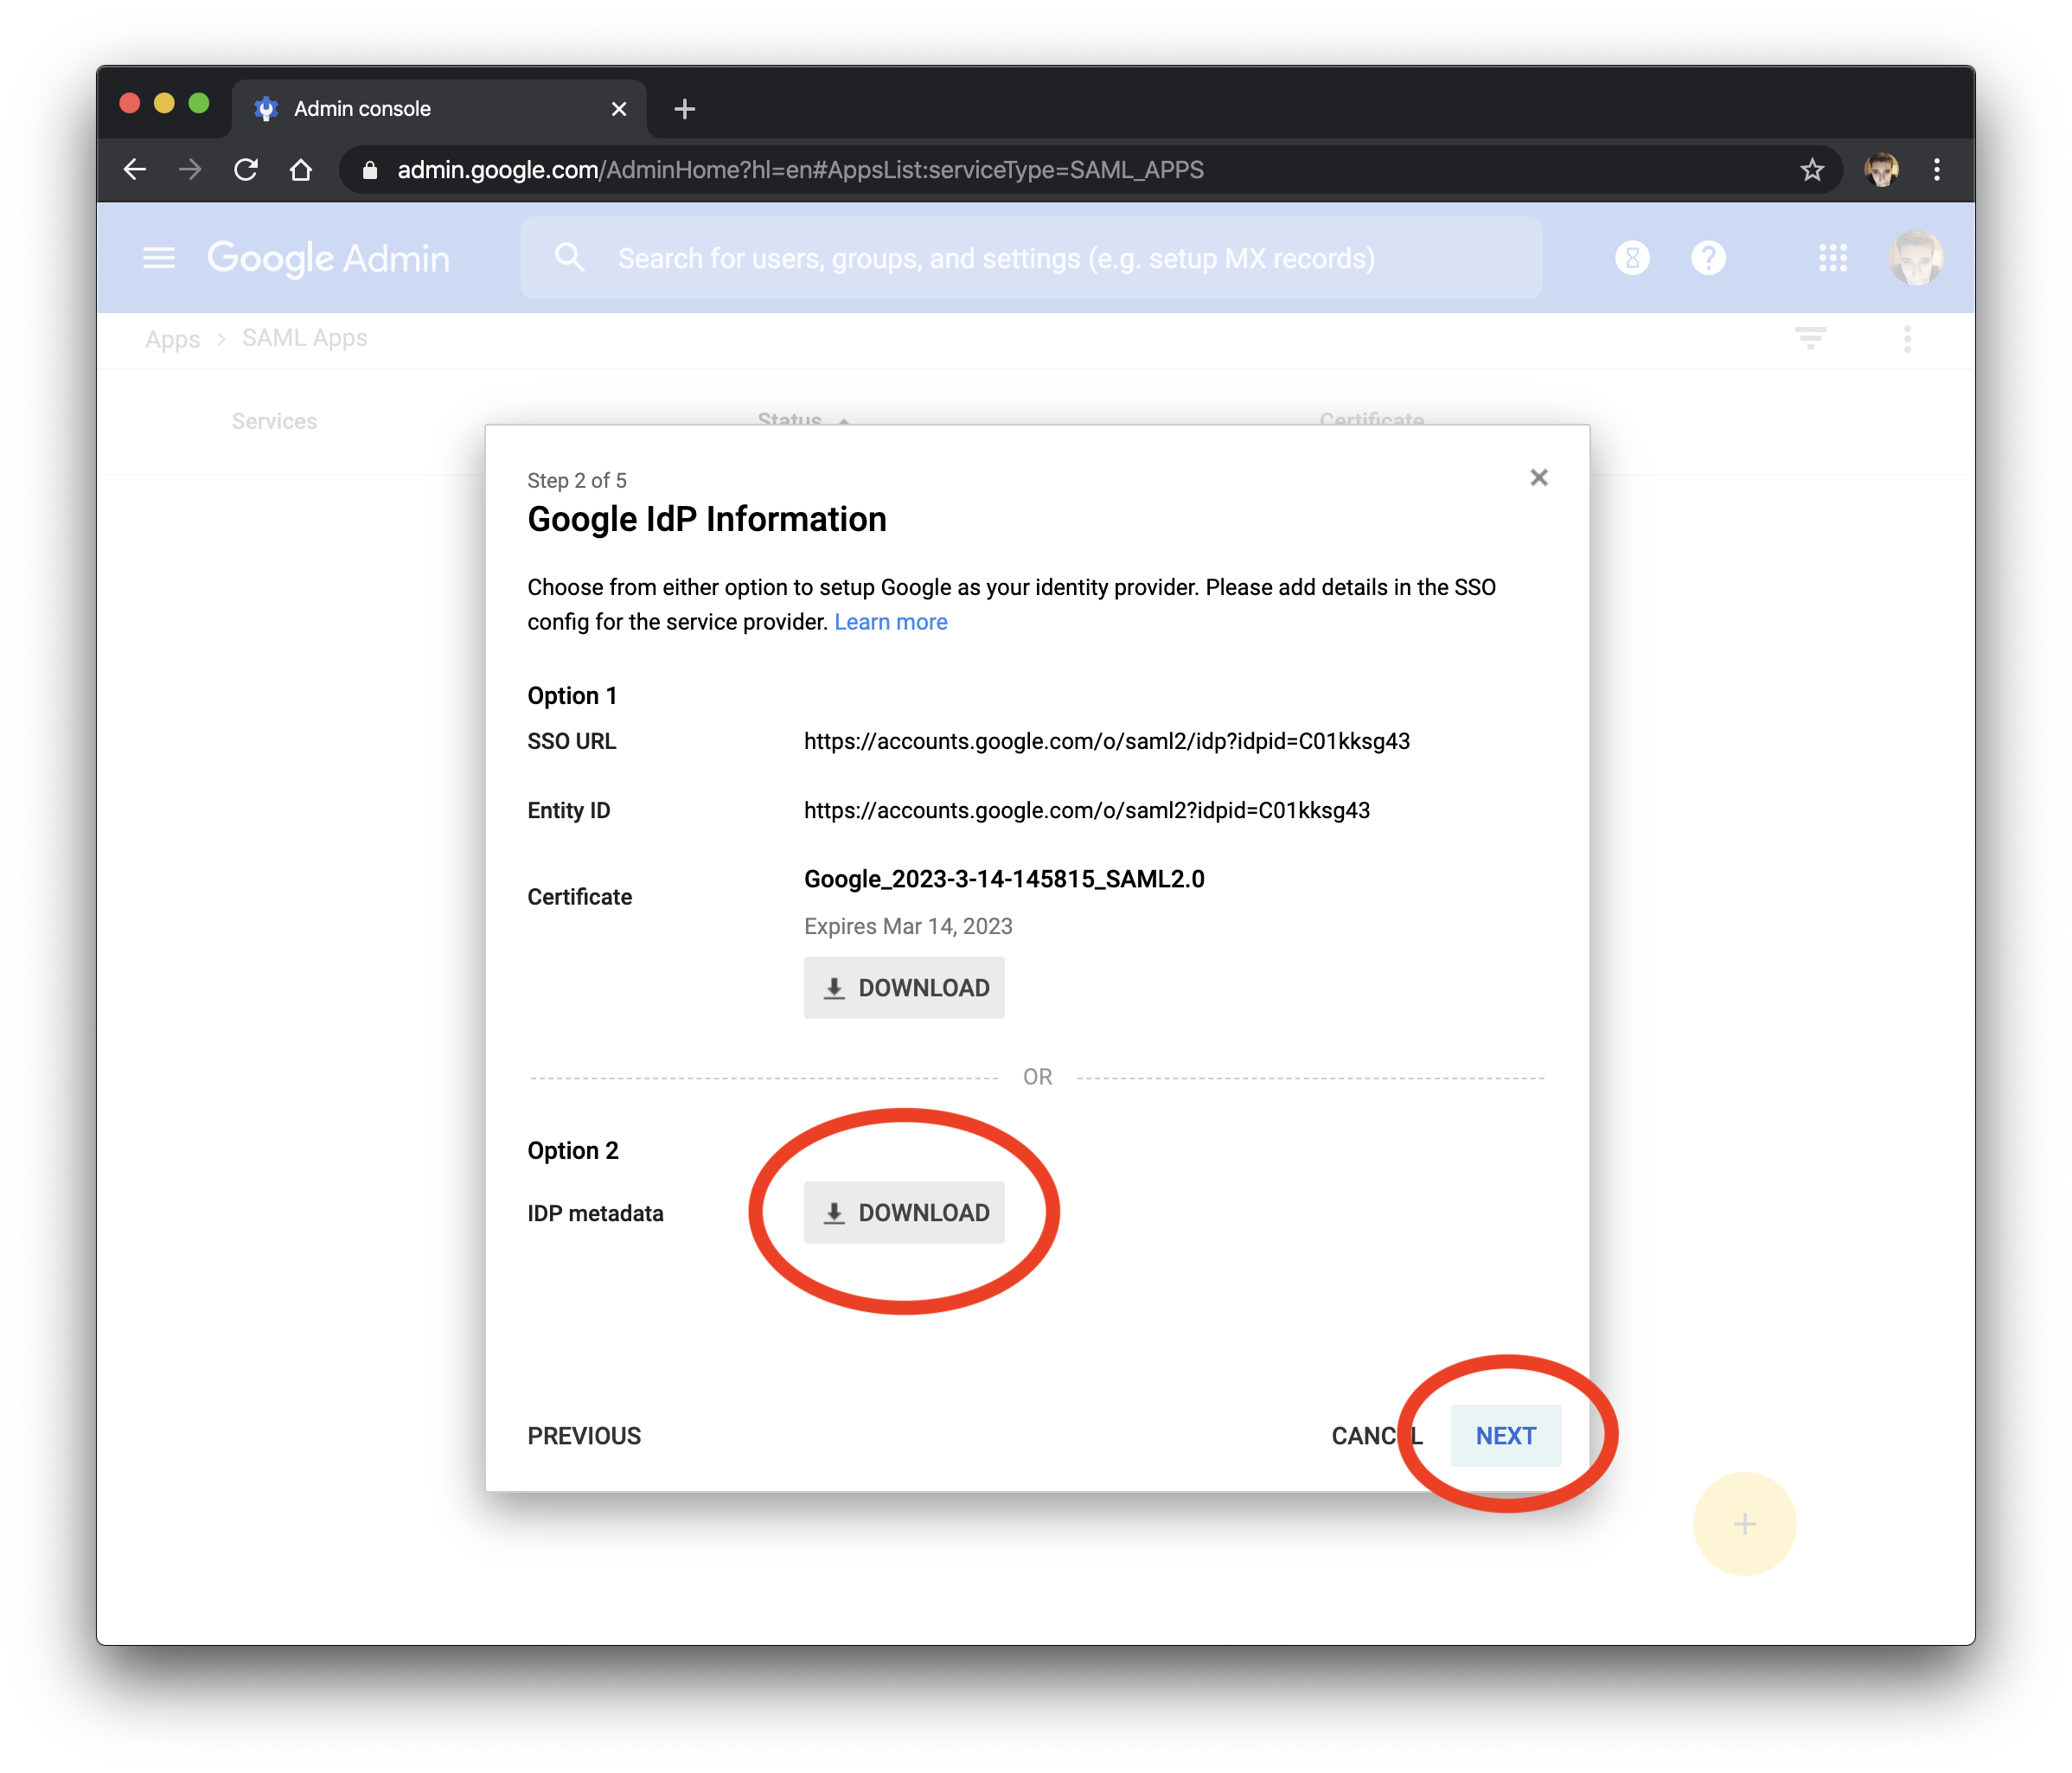 Download the IDP metadata from G Suite